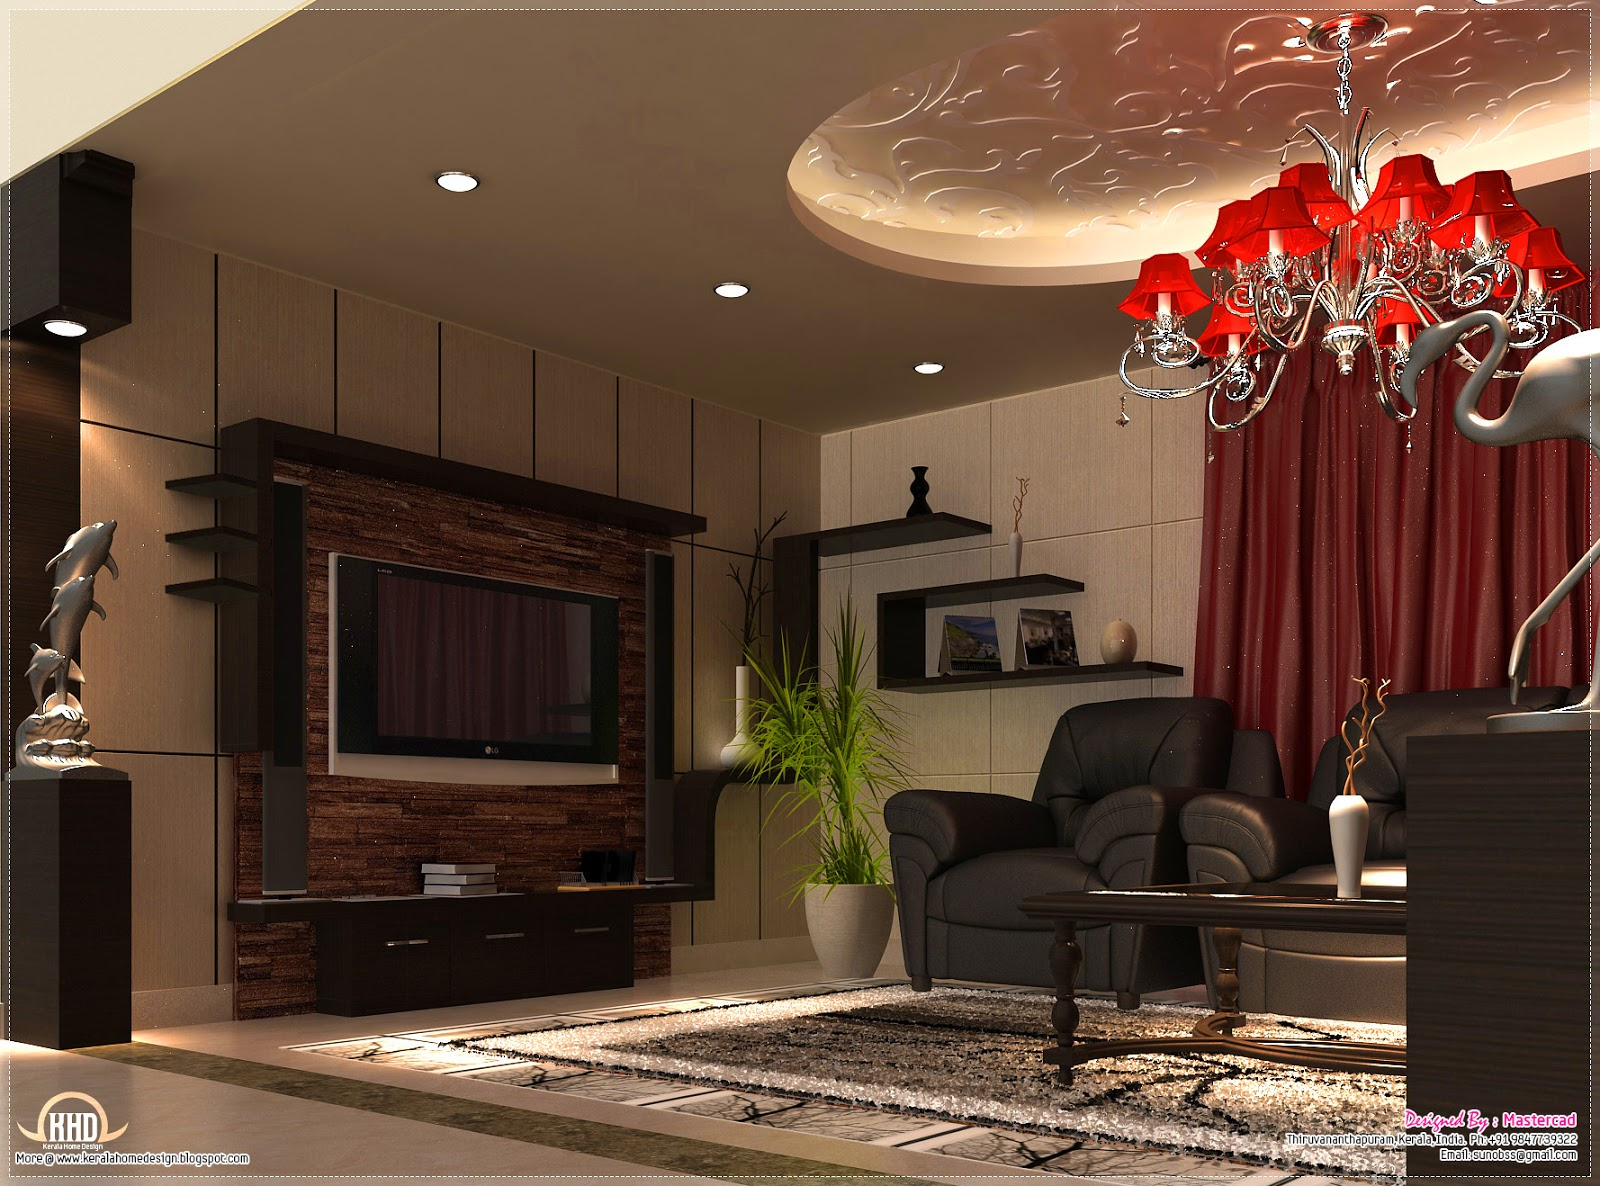 Interior design ideas home kerala plans for Indoor house design ideas